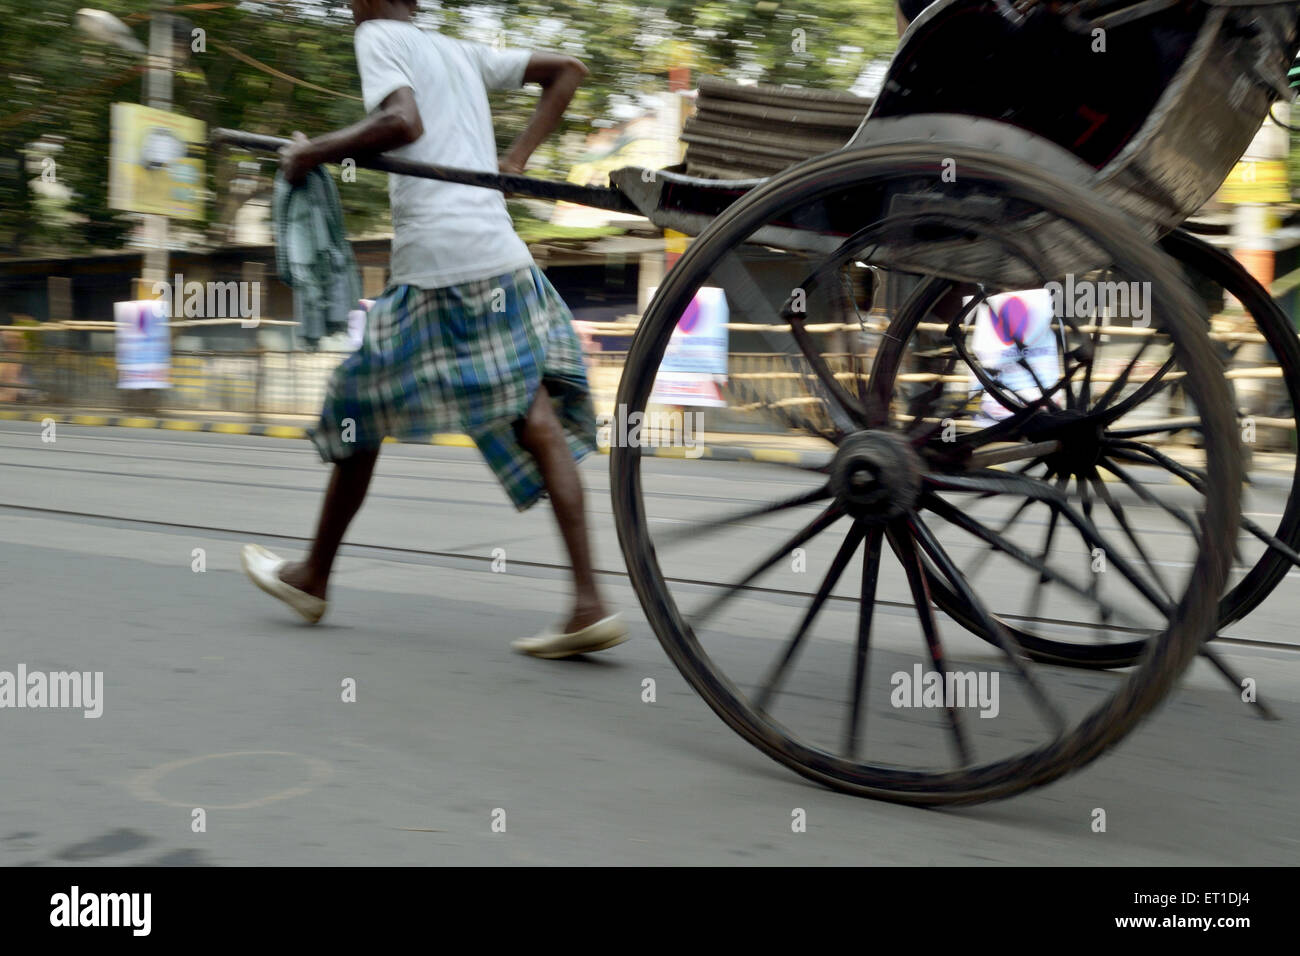 steel chair in guwahati walking for elderly man pulling wheels stock photos and